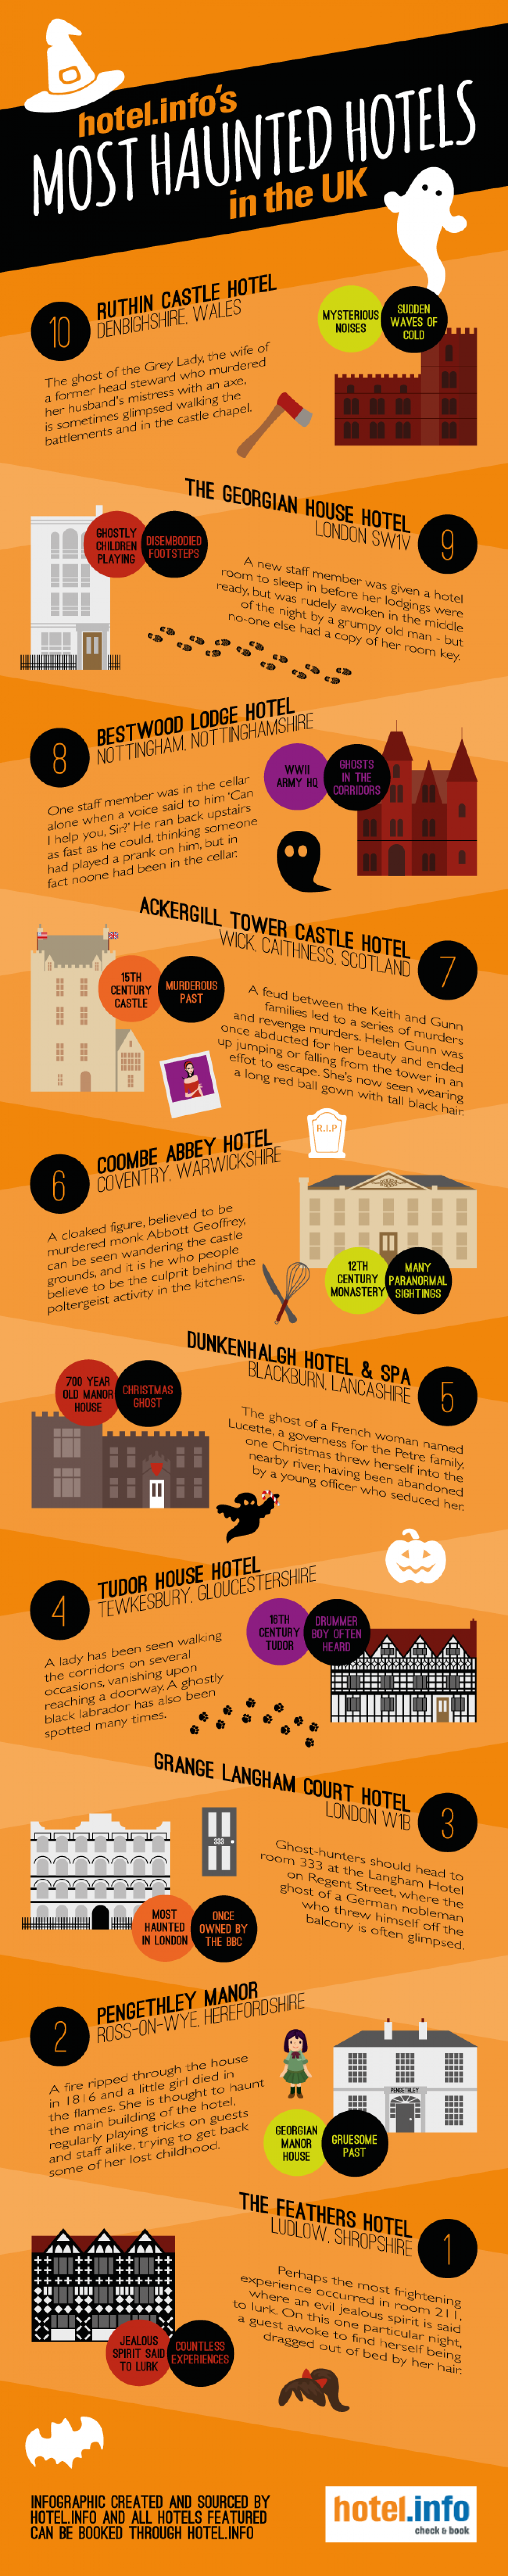 The Top 10 Most Haunted Hotels in the UK Infographic